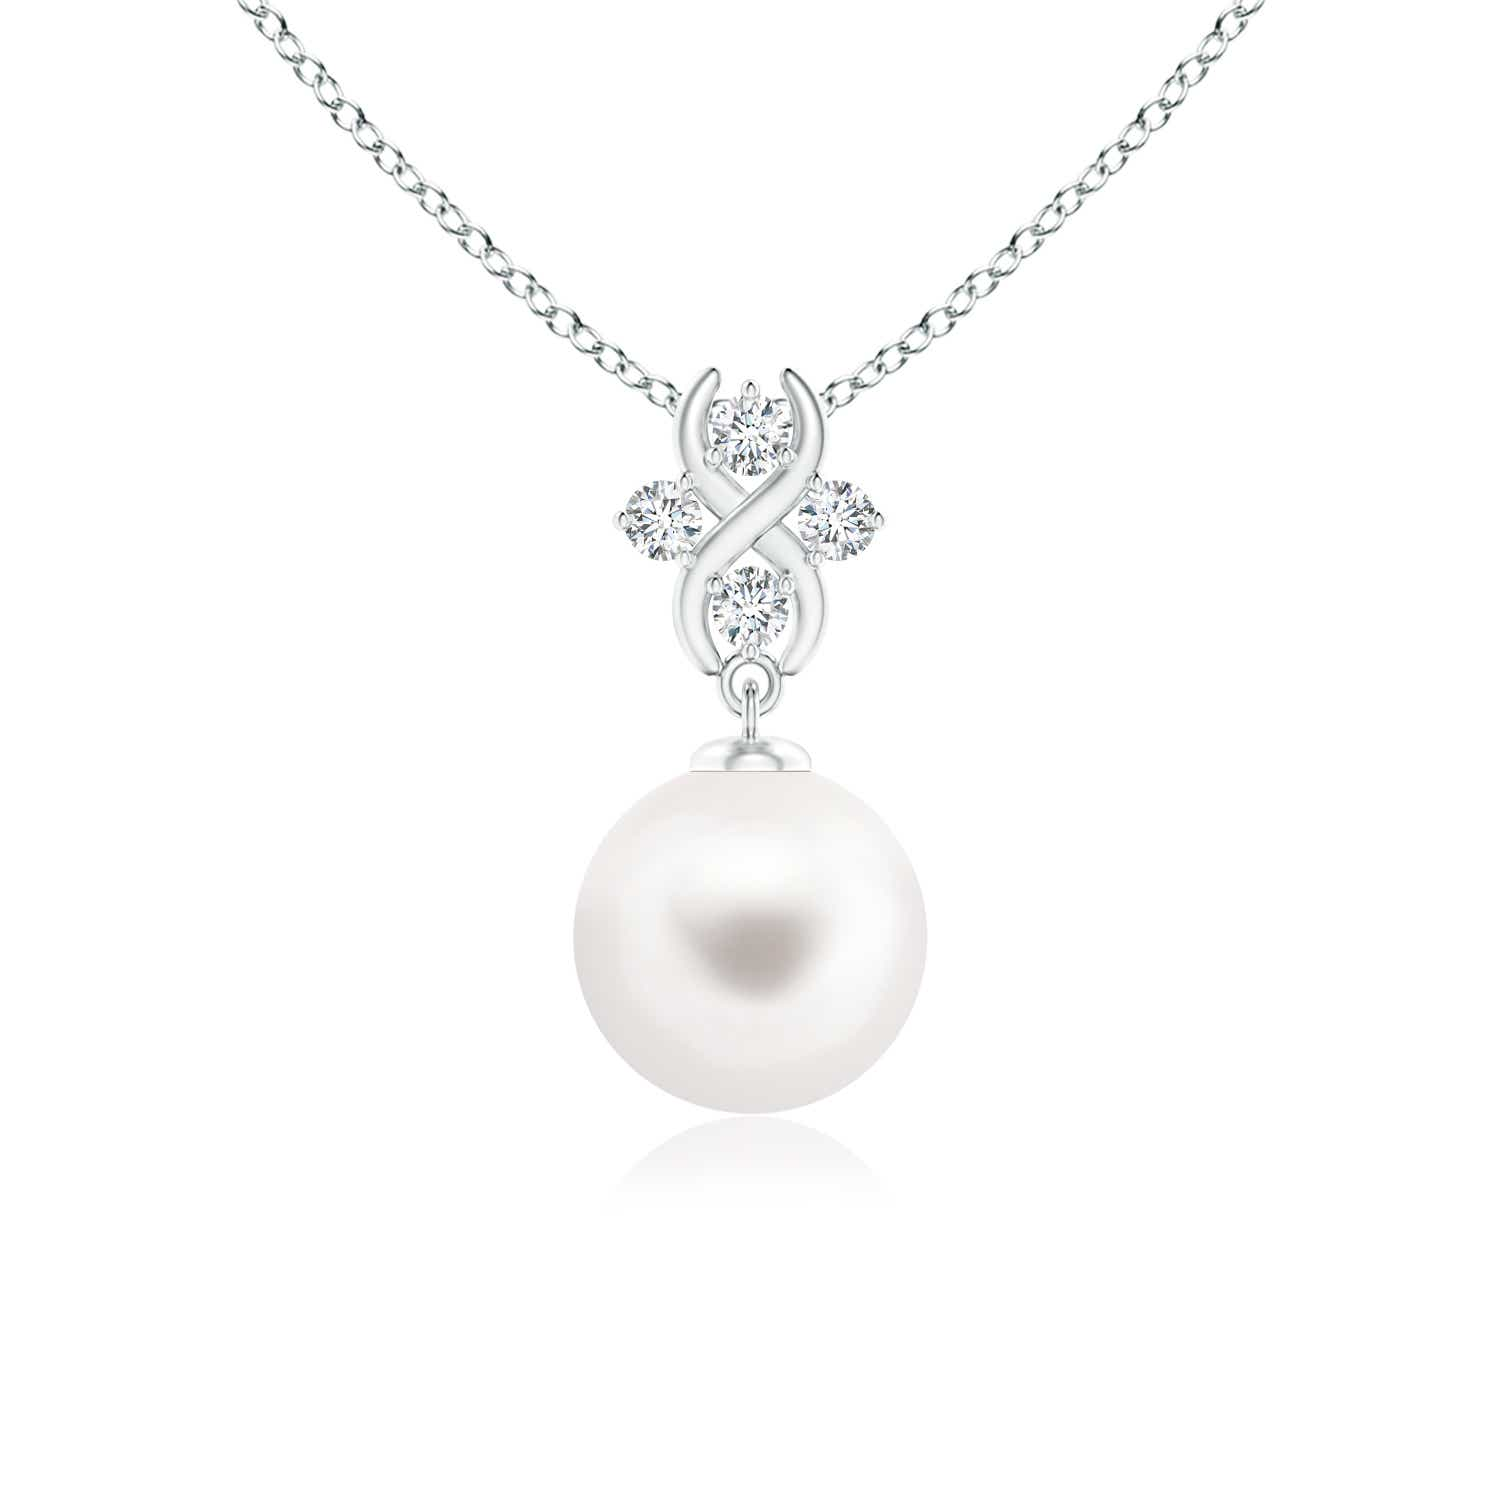 FreshWater Cultured Pearl Solitaire Pendant with Diamond Infinity Bale - Angara.com